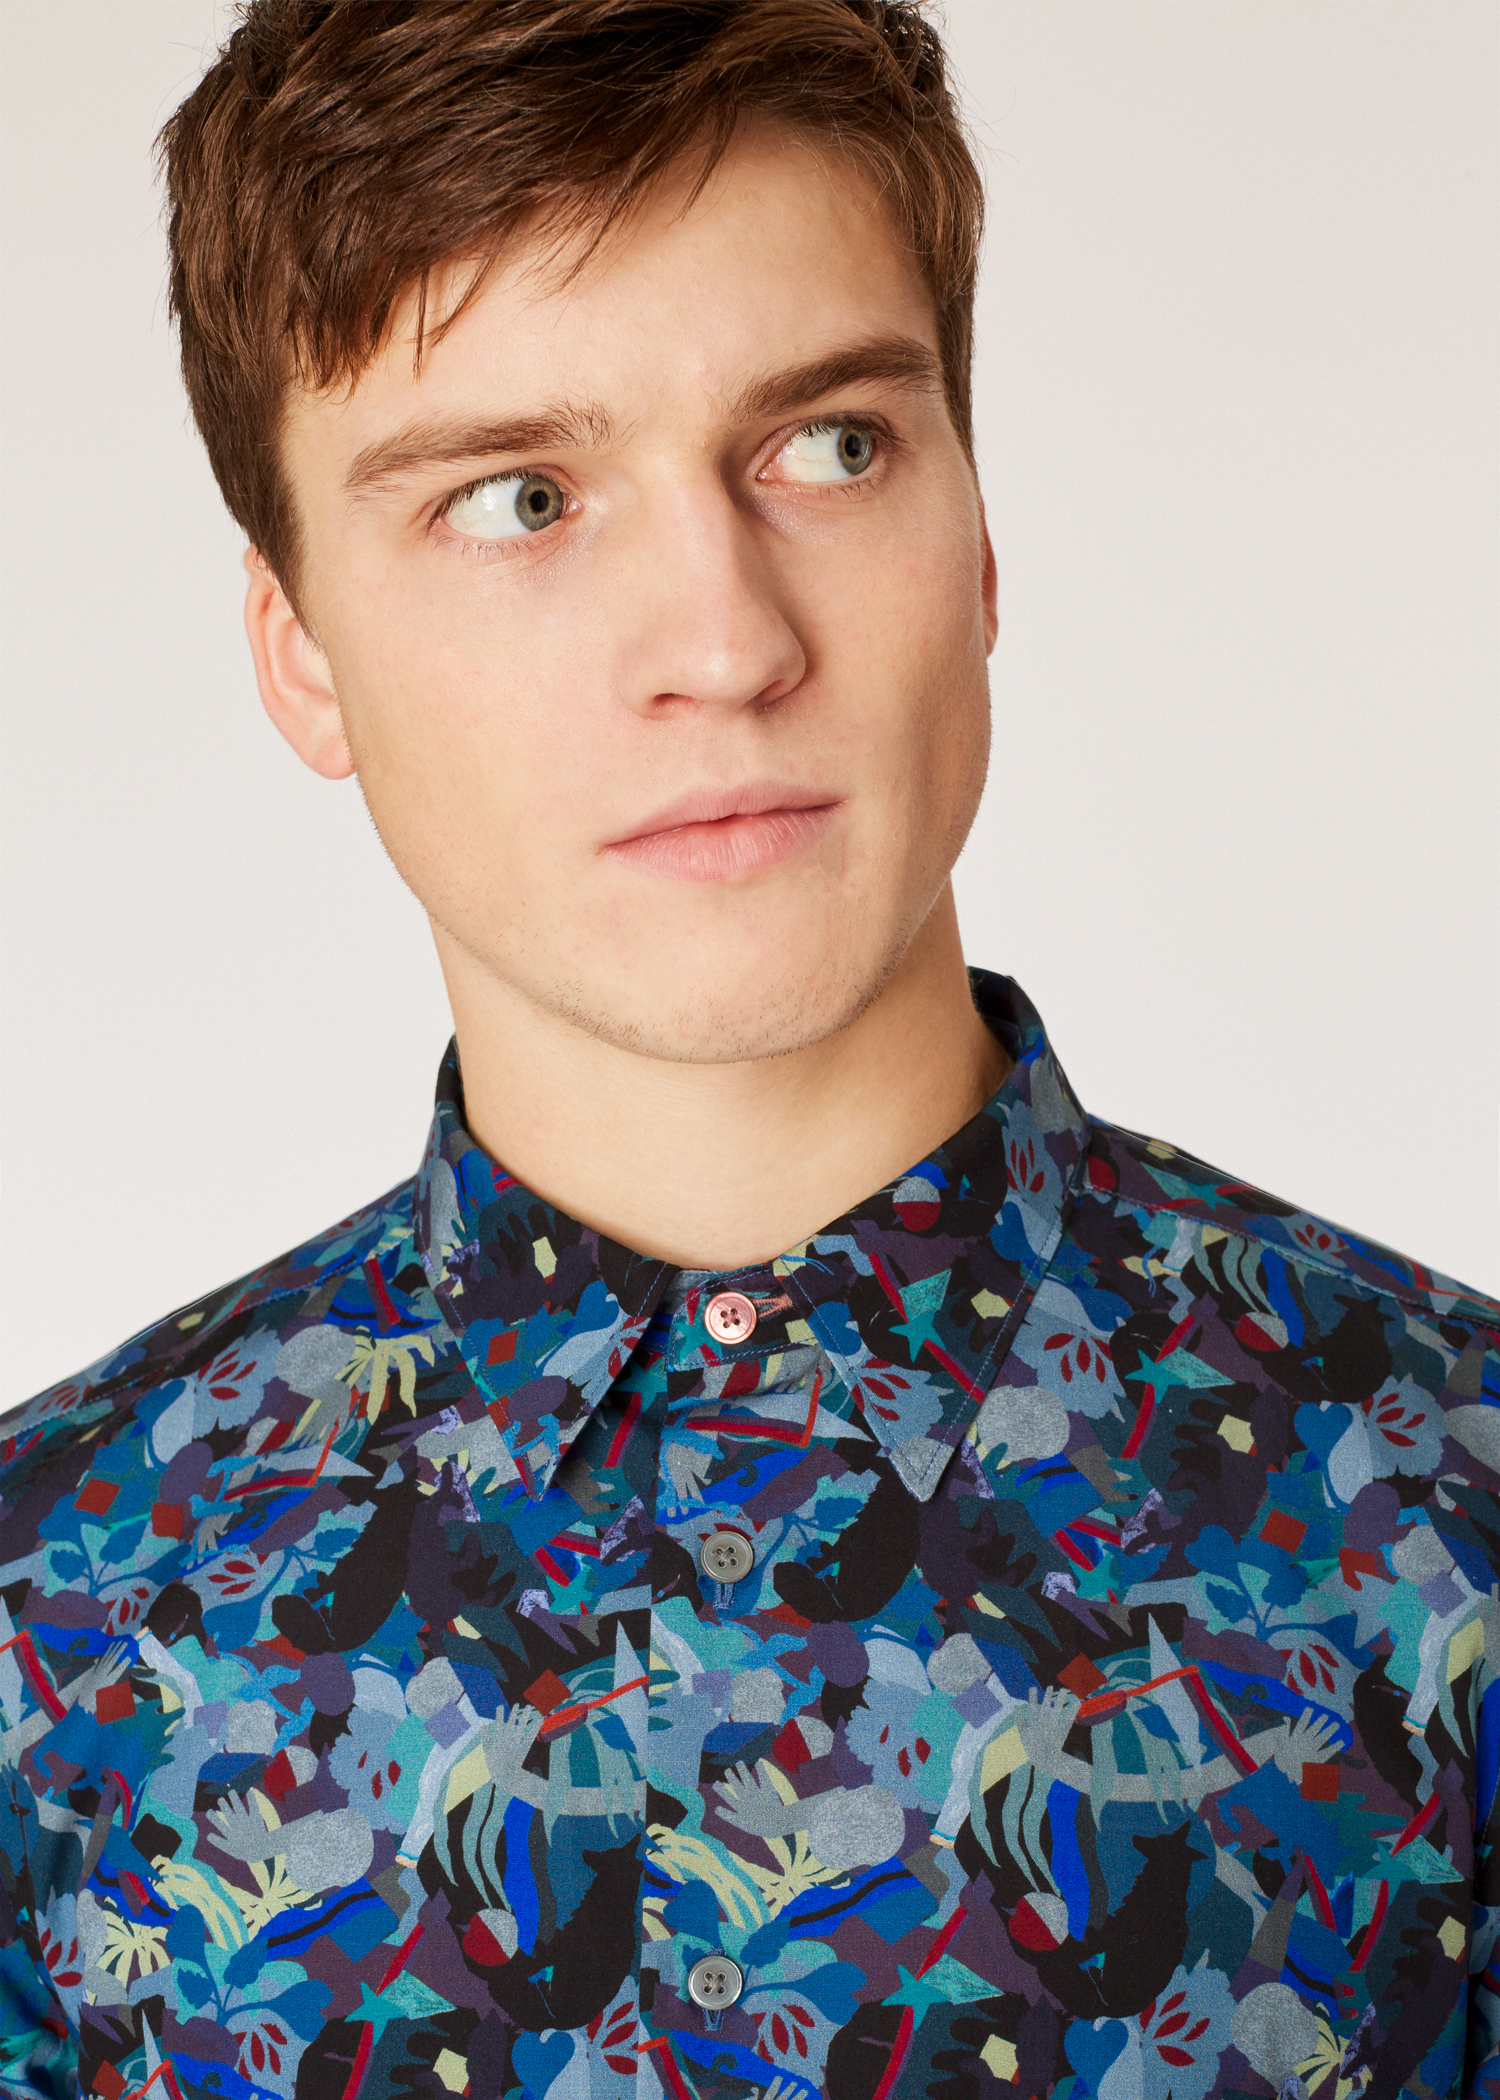 36ee5f5a46 Model front detail shot - Men's Tailored-Fit Multi-Coloured 'Urban Fox  Collage